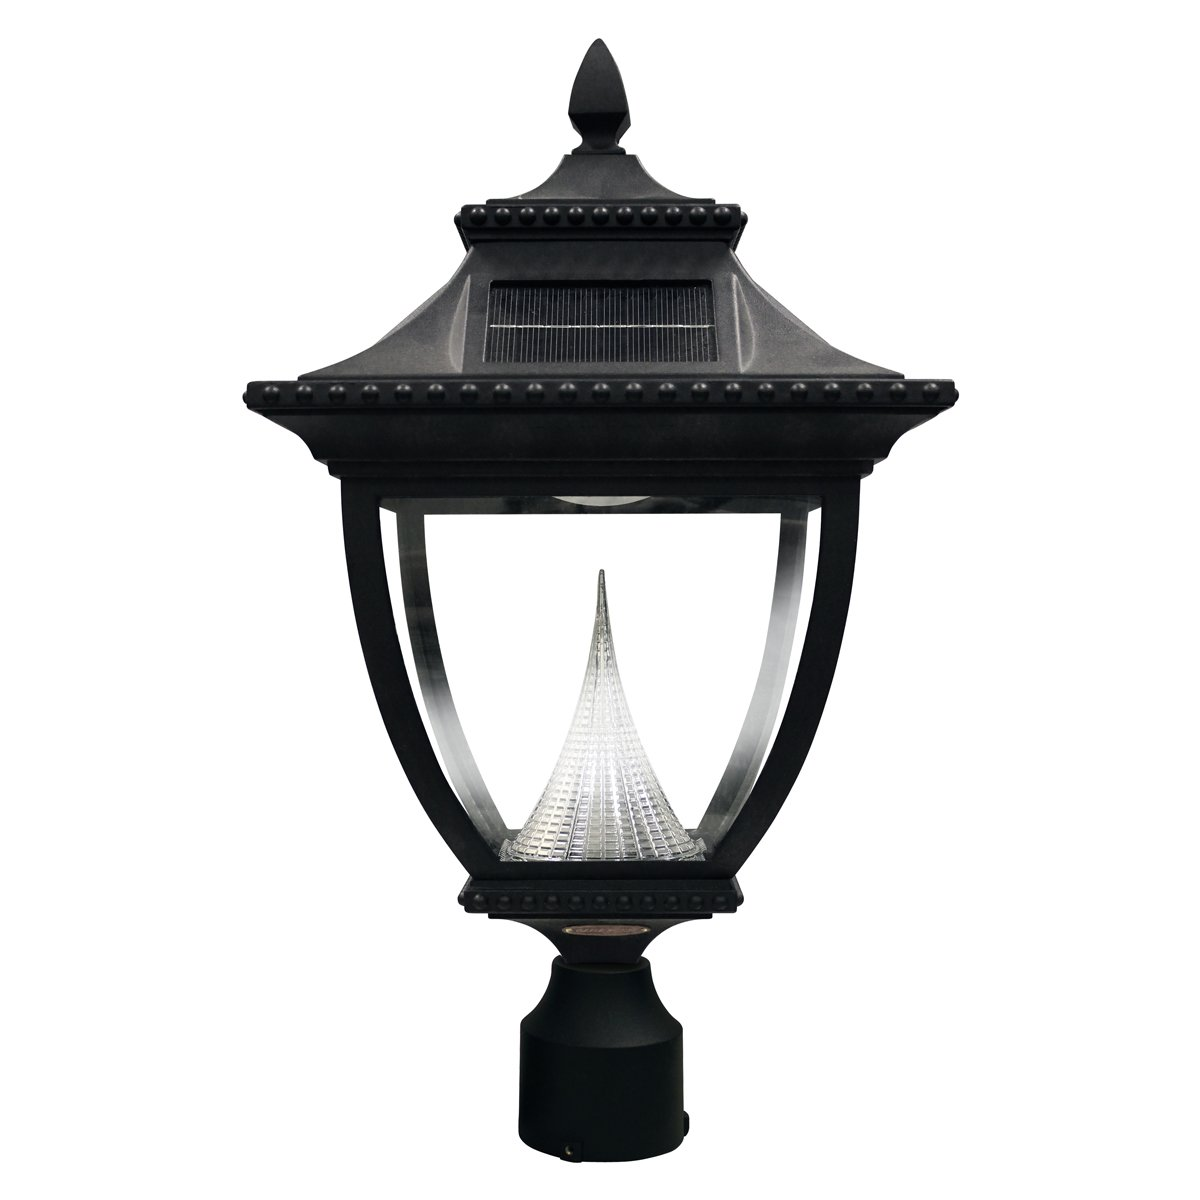 Gama Sonic Pagoda Solar Outdoor LED Light Fixture, 3-Inch Fitter for Post Mount, Black Finish #GS-104F